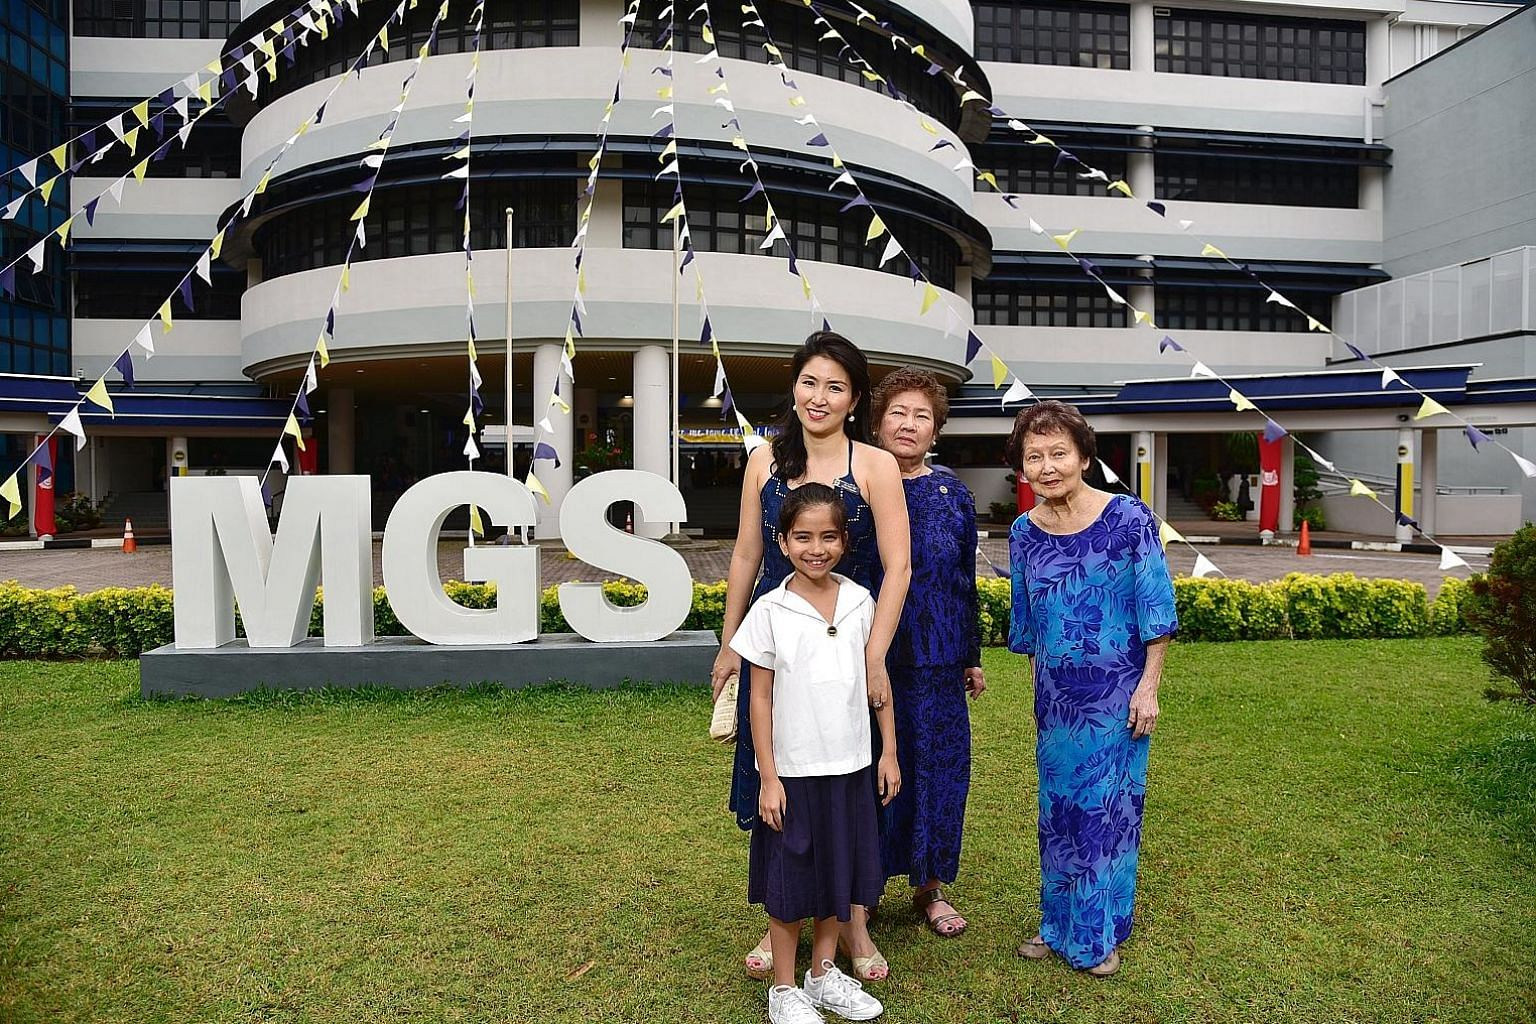 Astrid Natalya Virk, a pupil at Methodist Girls' School, with (from left) her mother Joy-Marie Toh, her grandmother Victorine Chen and her great- grandmother Happy Chen, all former students of MGS. Maintaining ties with the school is part of our heritage,